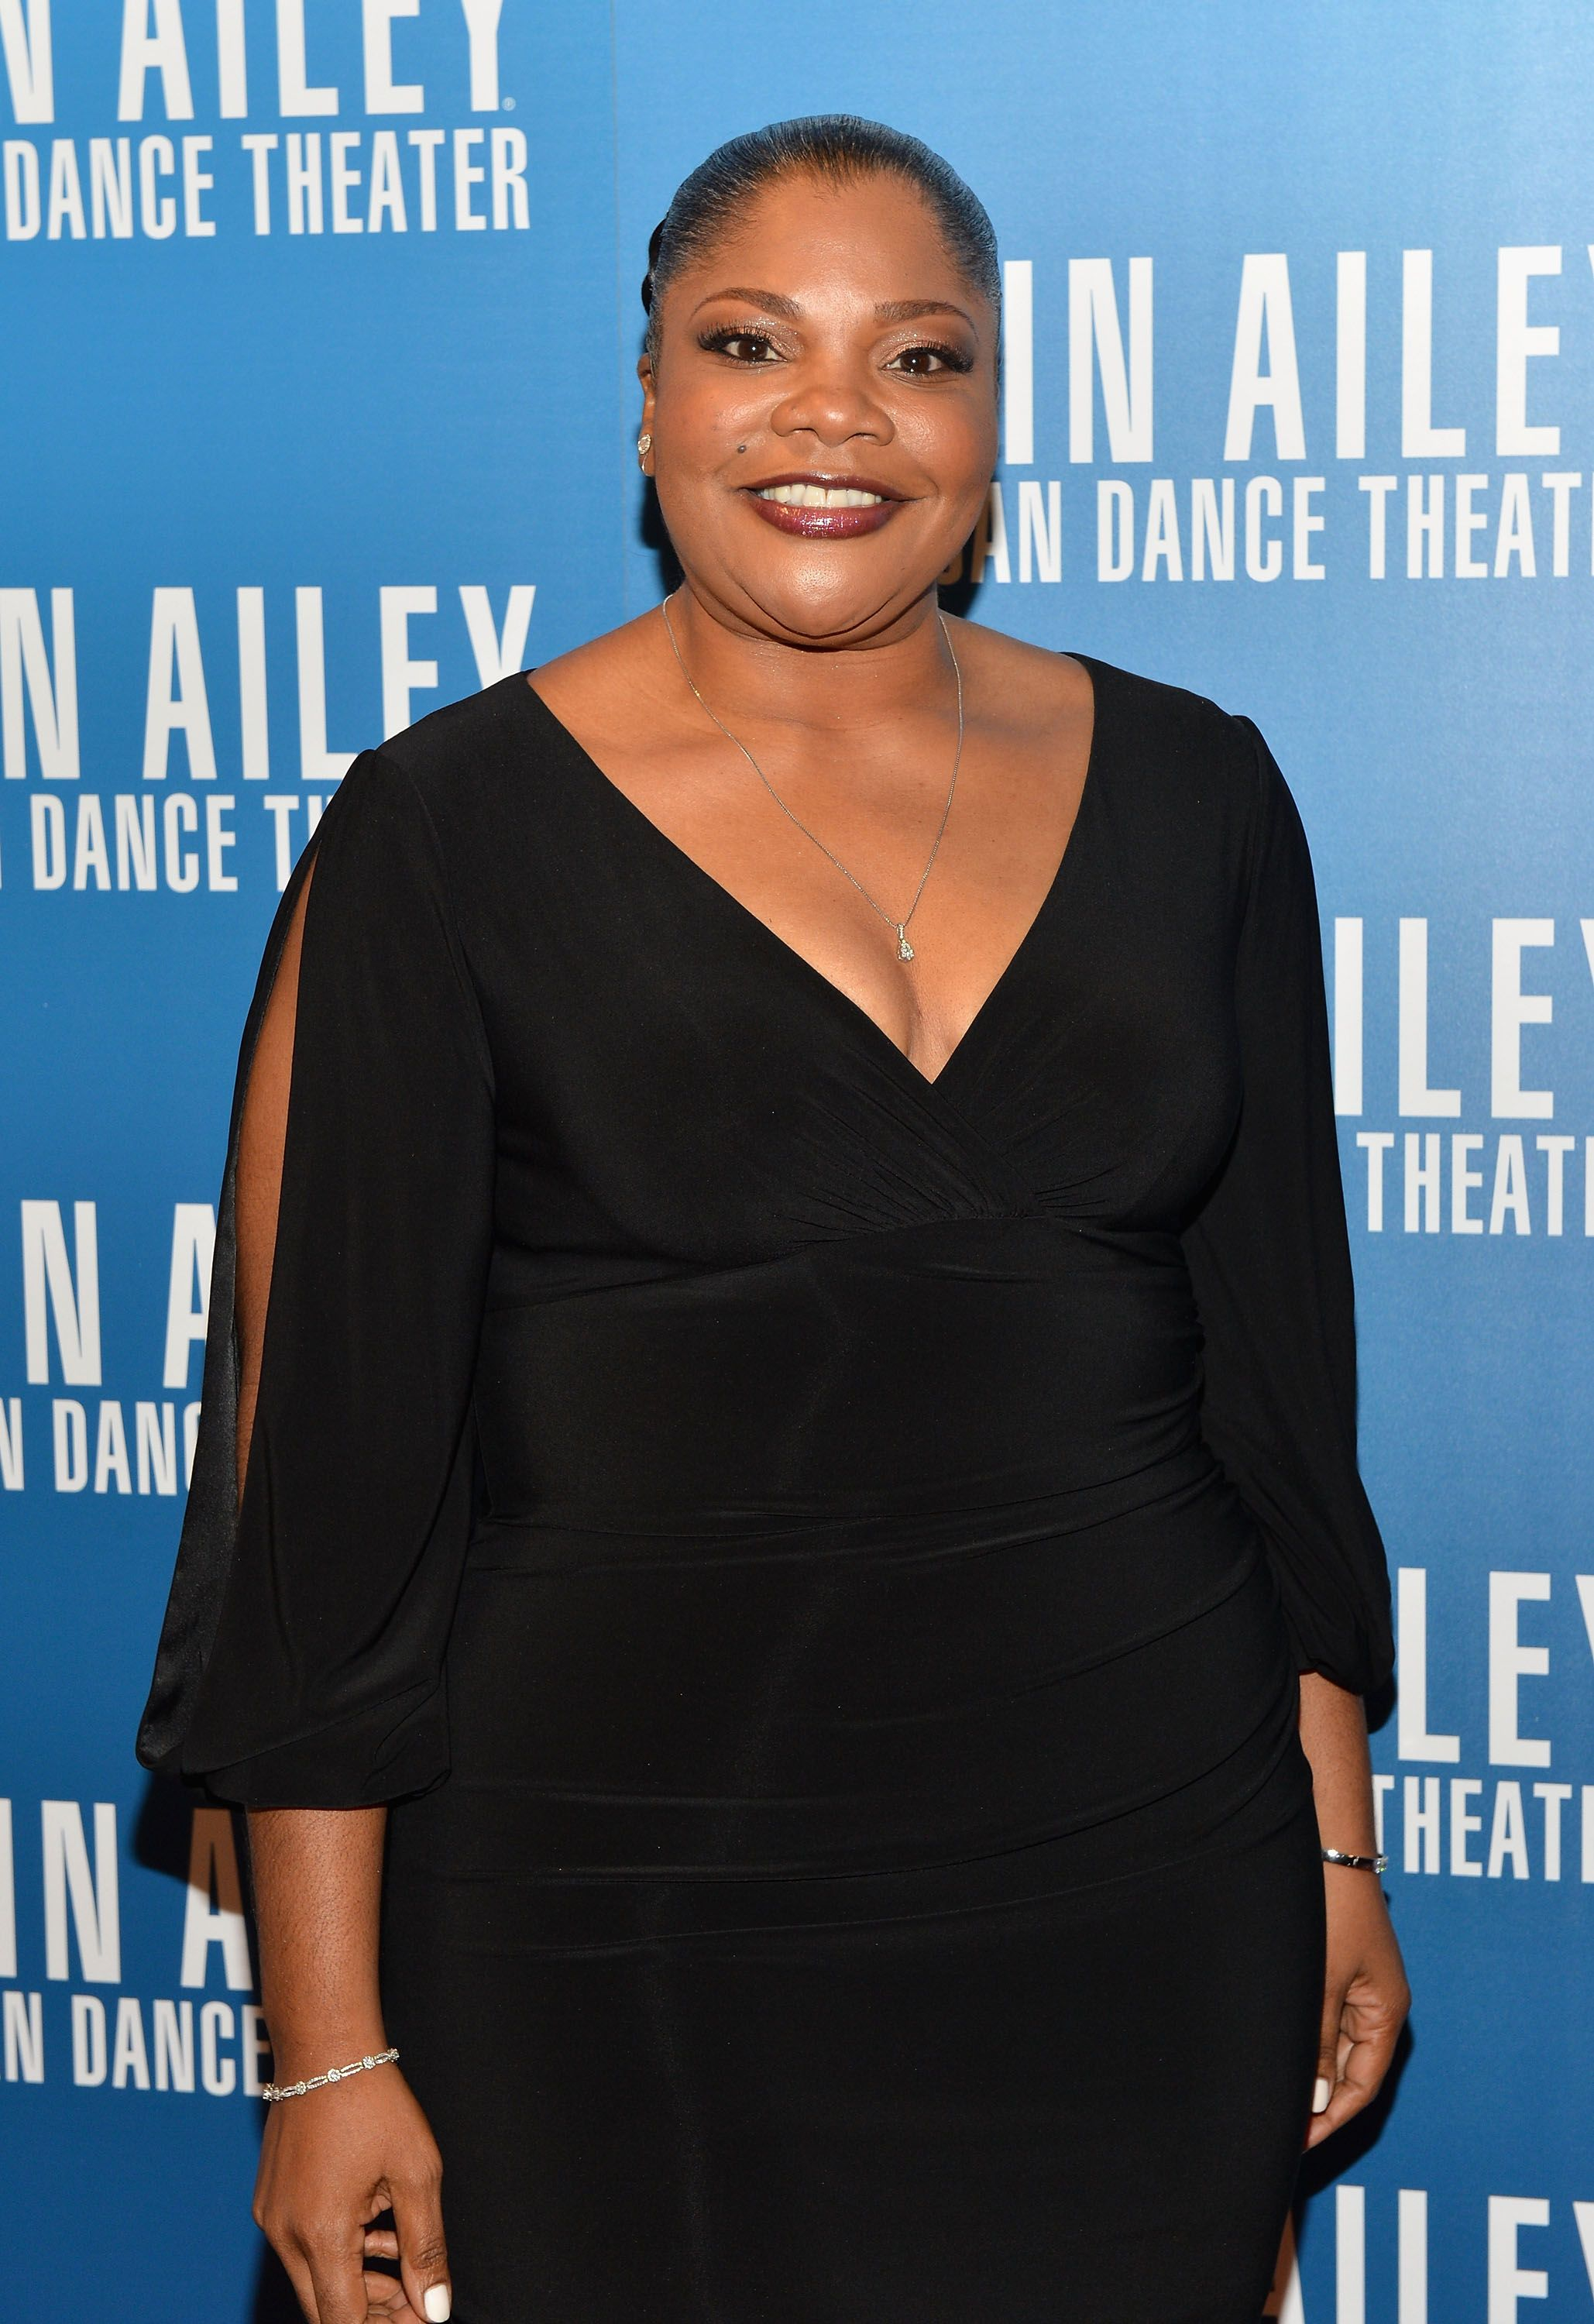 Mo'Nique during the Alvin Ailey American Dance Theater Opening Night Gala at New York City Center on November 28, 2012 in New York City.  | Source: Getty Images